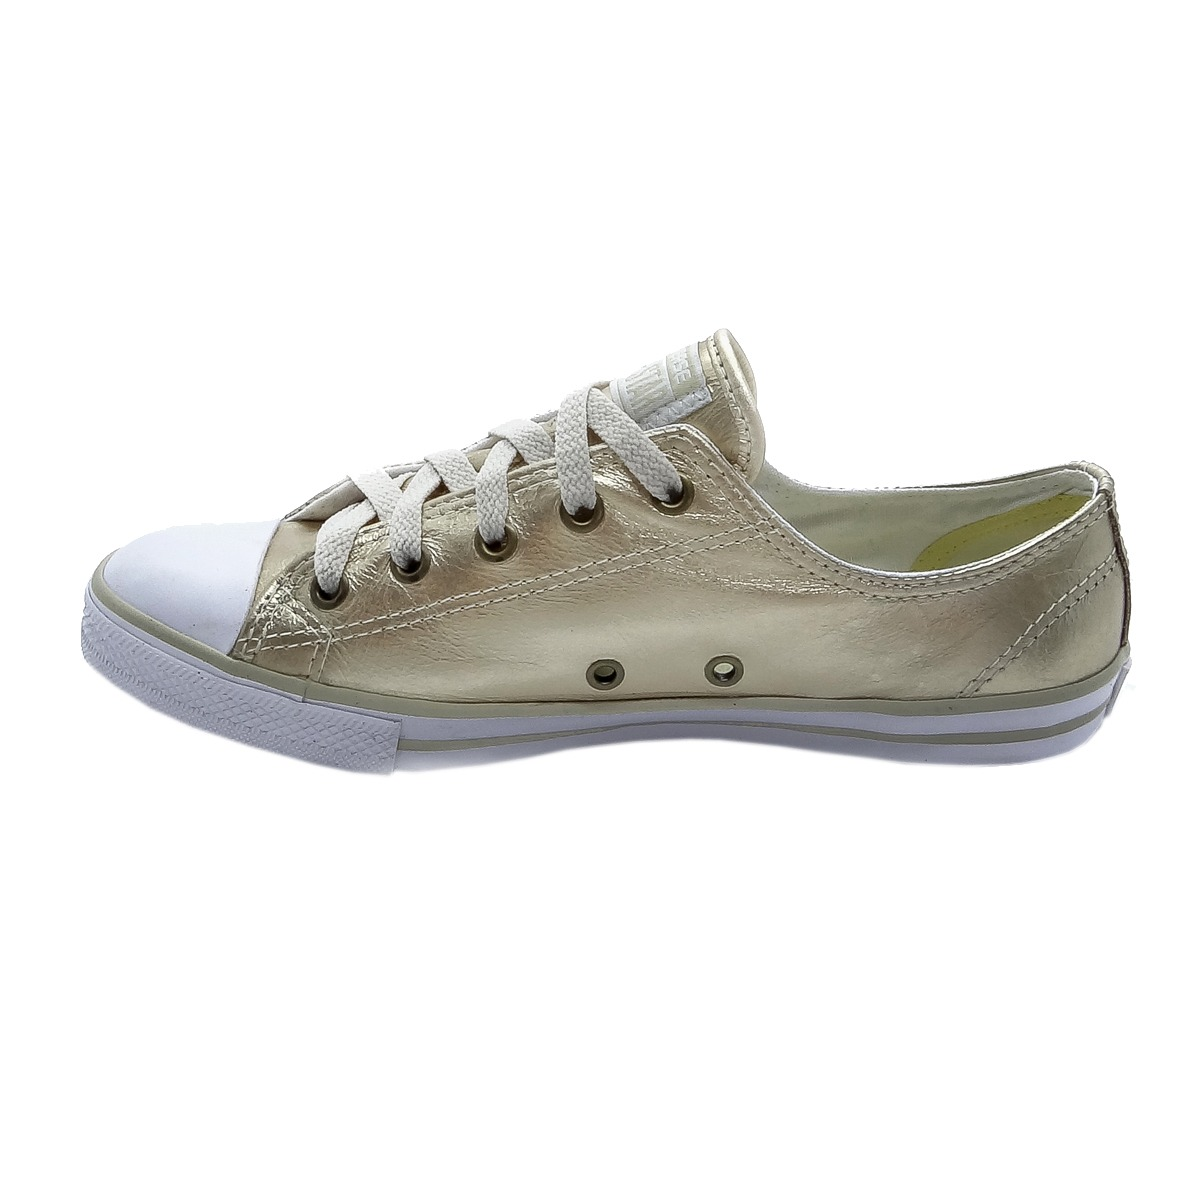 743234c385f tênis converse all star ct as dainty leather ox ouro ce00340. Carregando  zoom.